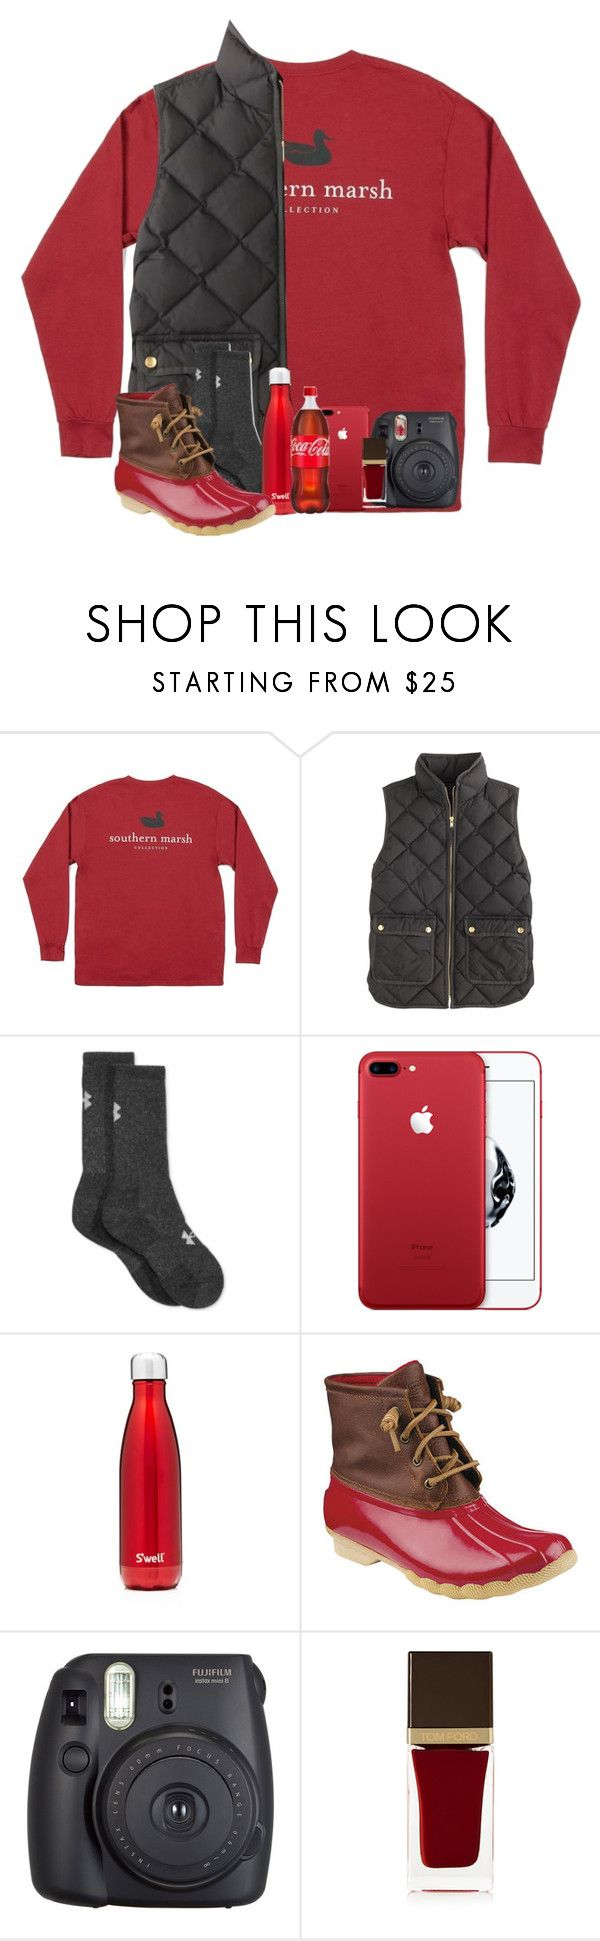 """50 Shades of Red (i had to;) rtd"" by katie-1111 ❤ liked on Polyvore featuring J.Crew, Under Armour, S'well, Sperry, Fuji and Tom Ford"